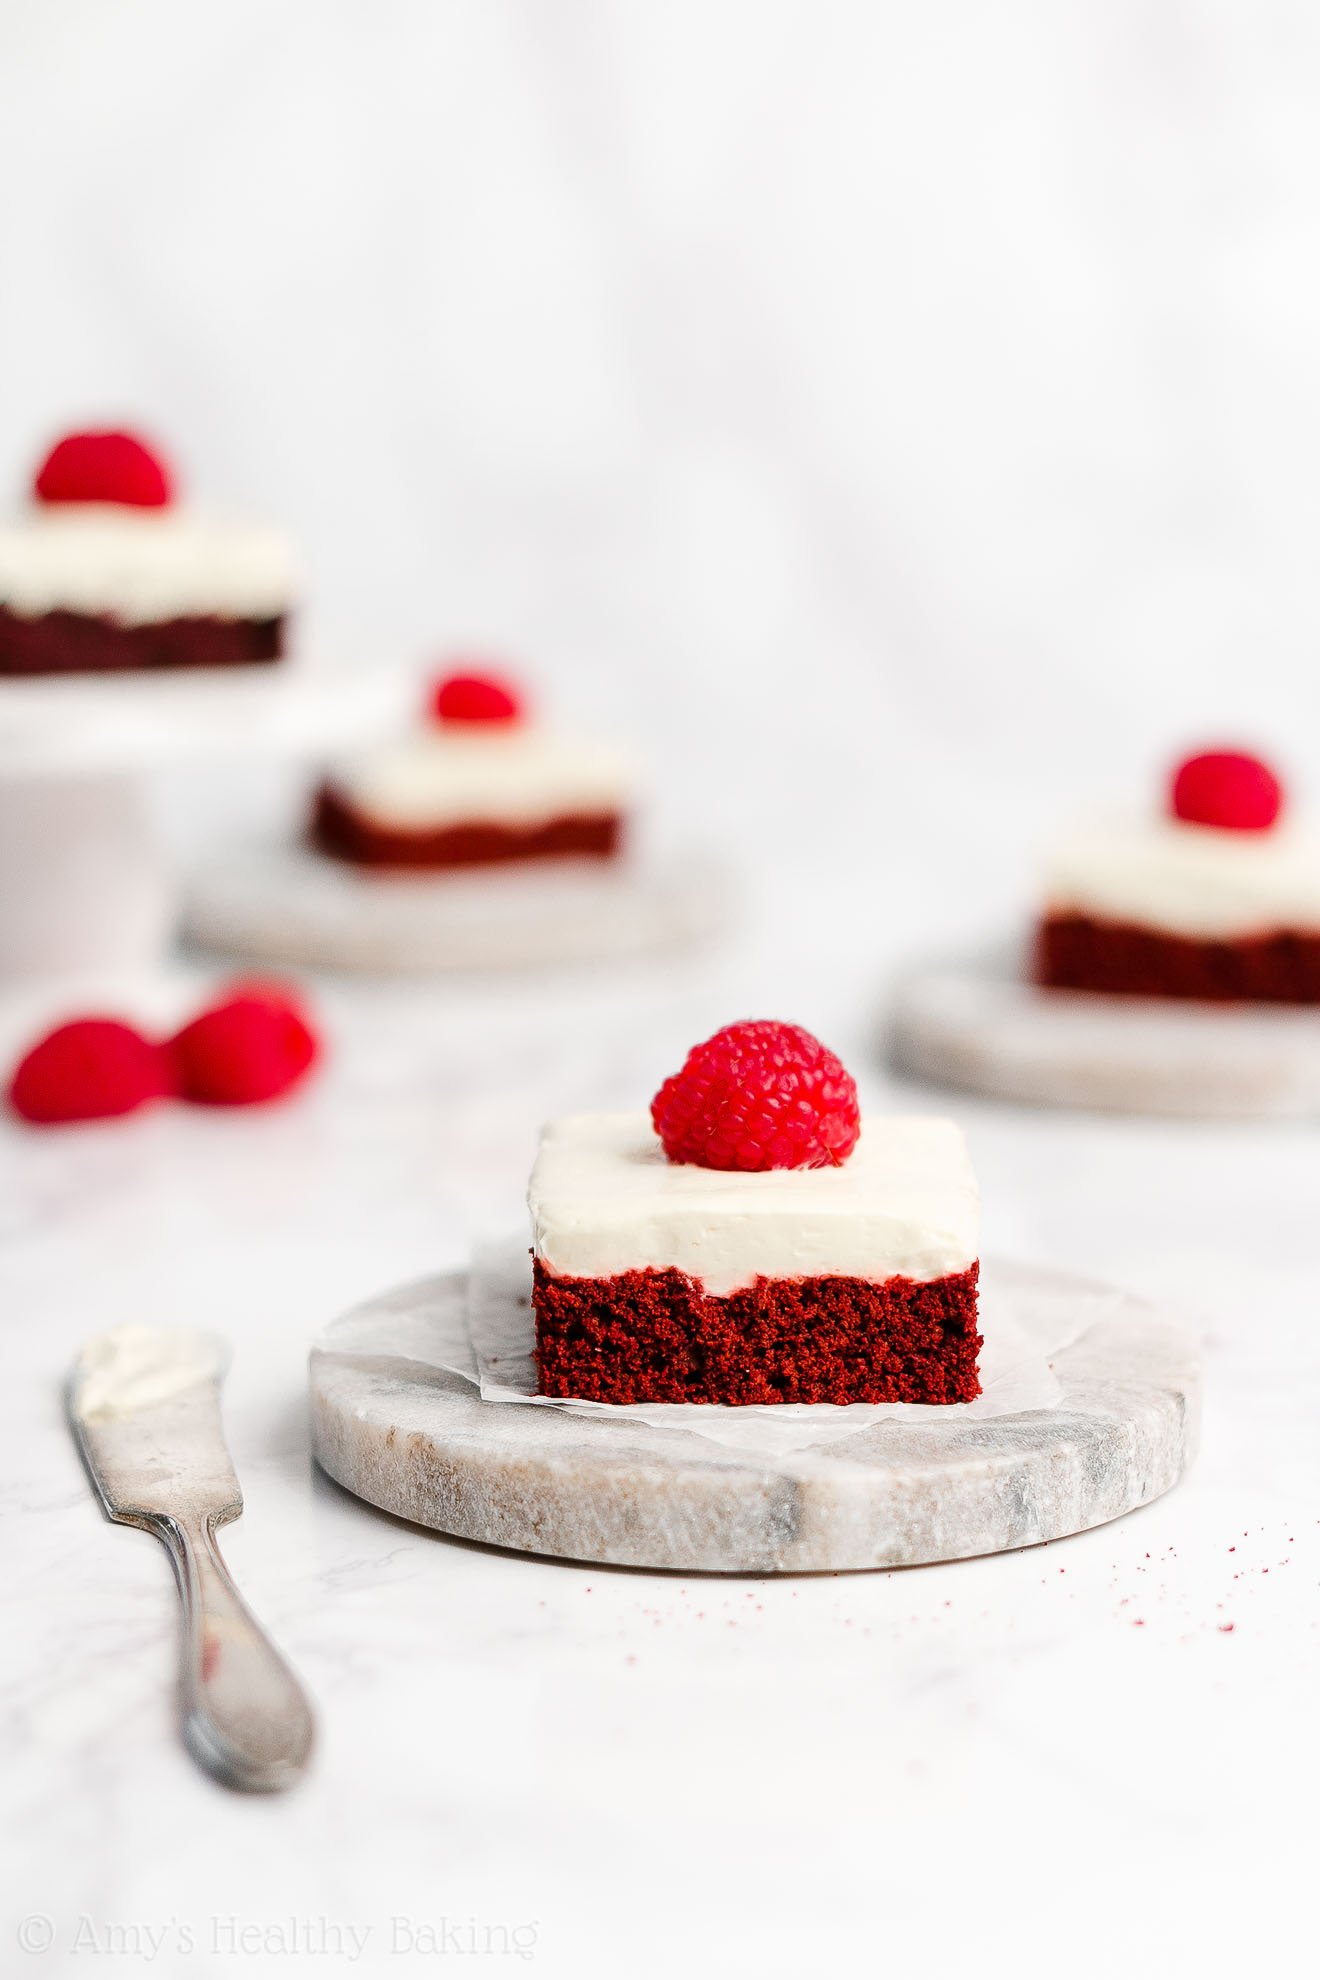 Healthy Red Velvet Cookie Bars + Cream Cheese Frosting for the 4th of July